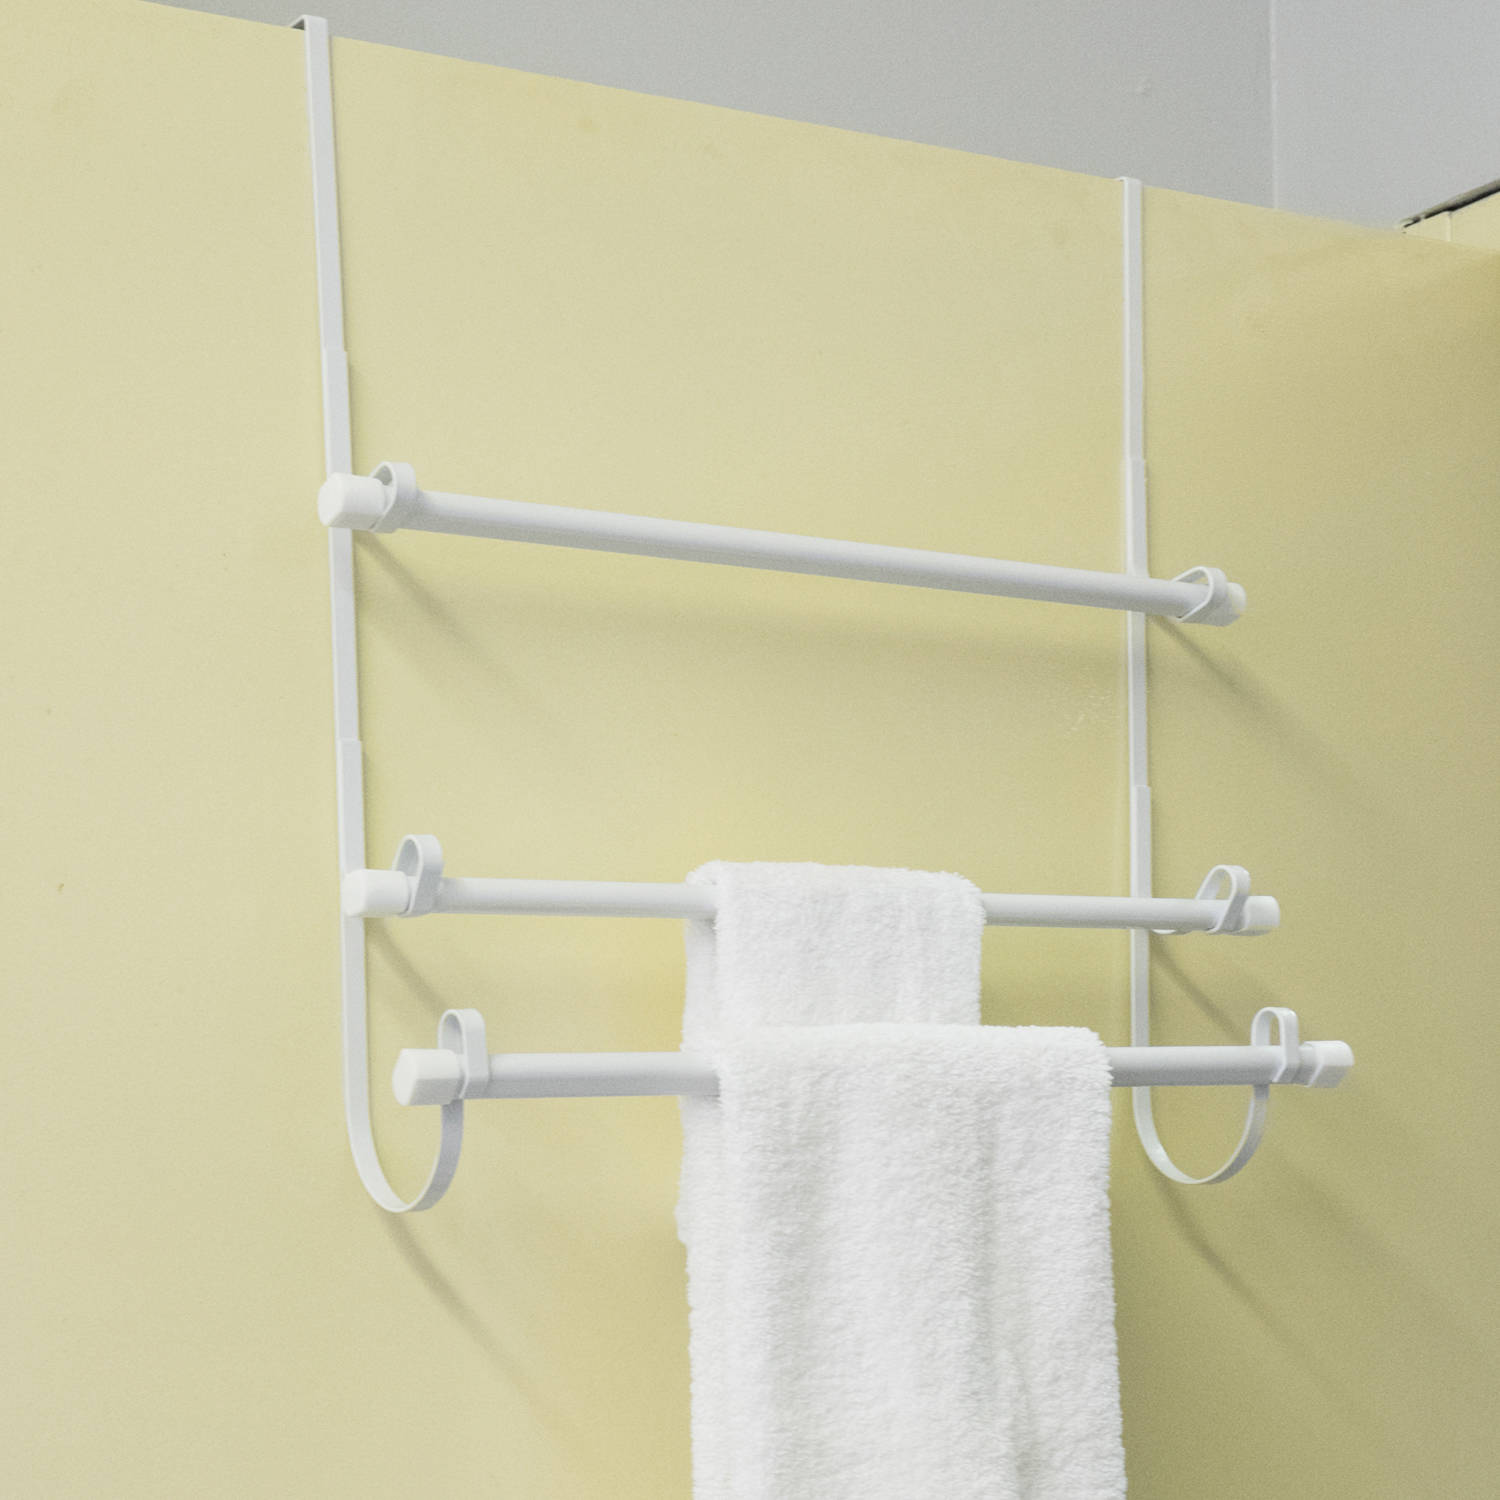 Superieur Epoxy Steel Over The Door Bathroom White Towel Hanger Organizer, 3 Bar Rack